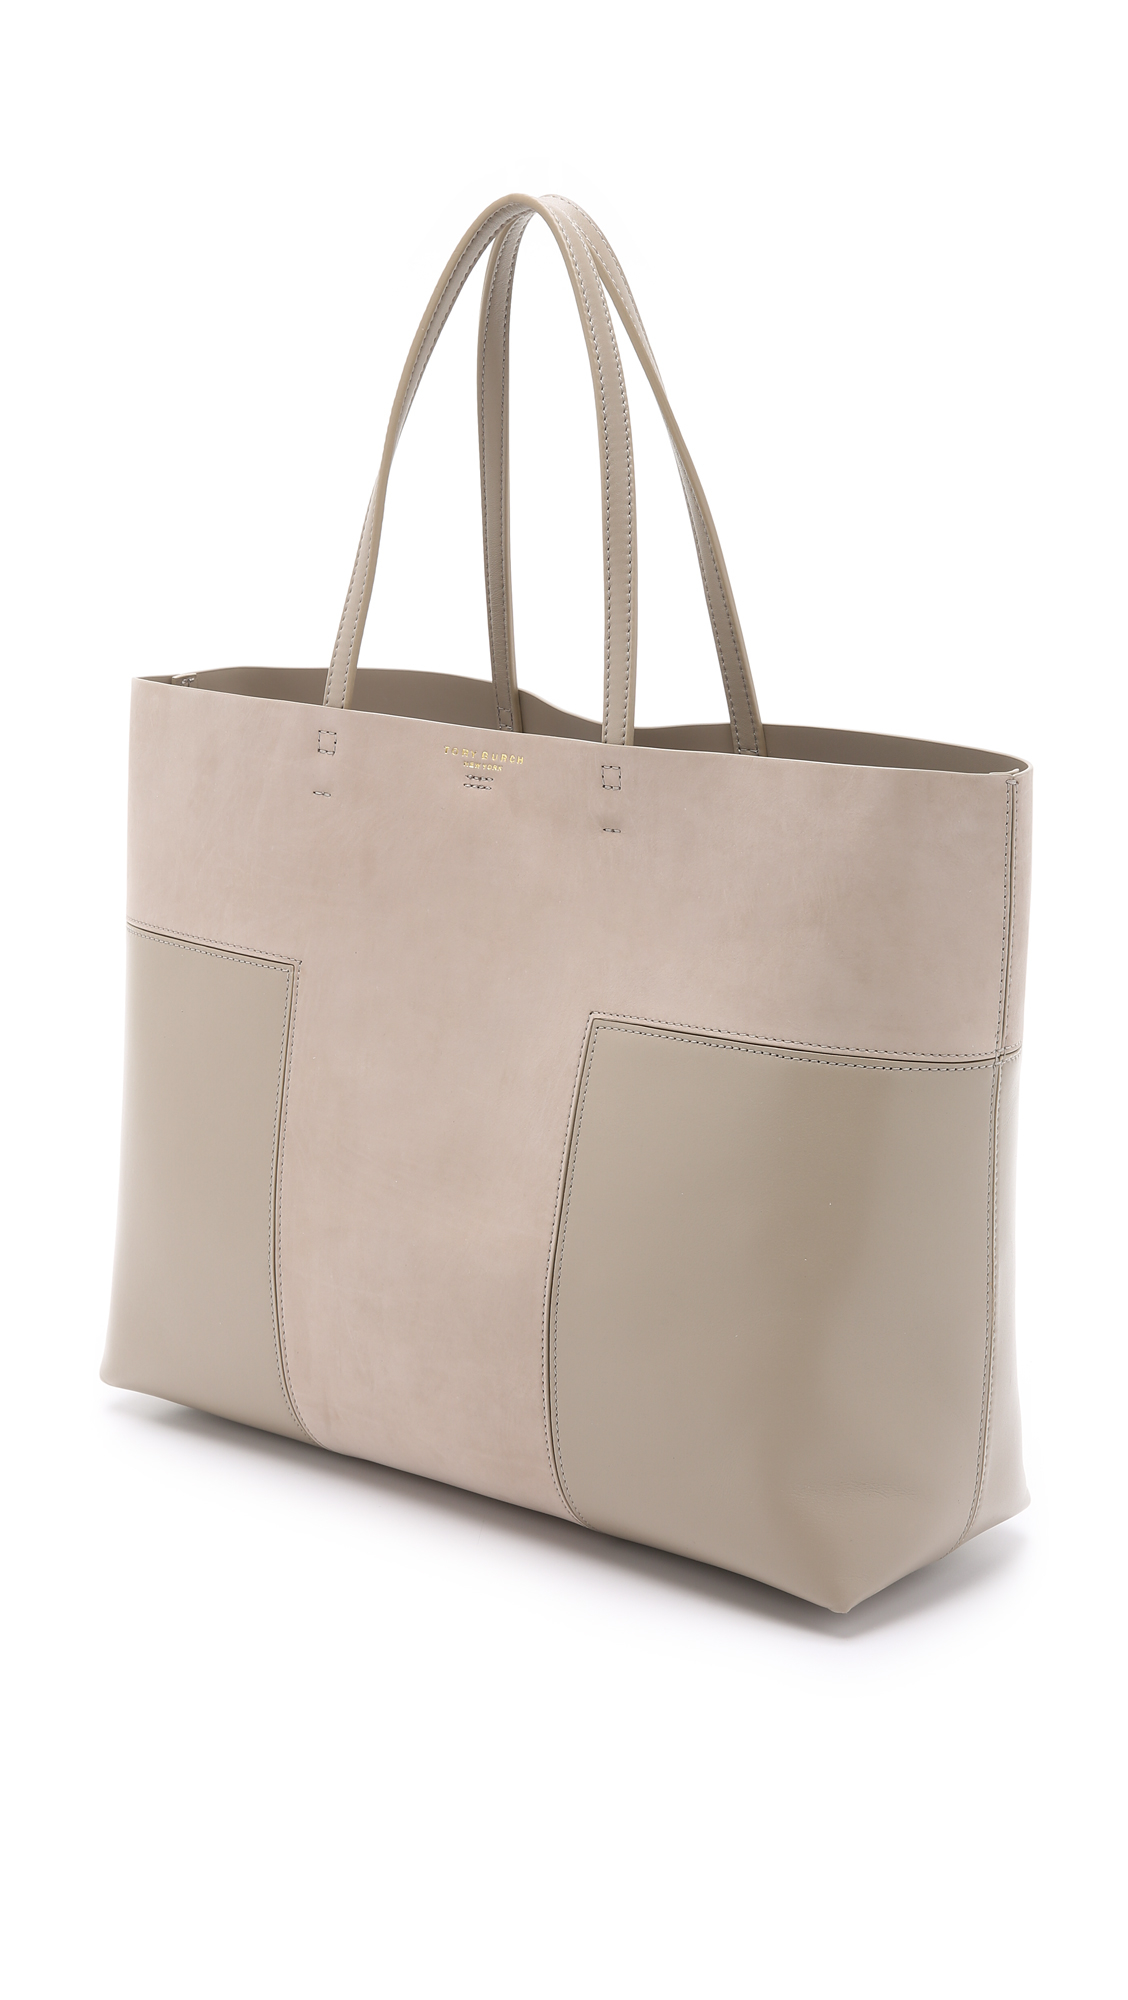 d7910b7c739d Lyst - Tory Burch Block T Large Tote - French Gray in Gray